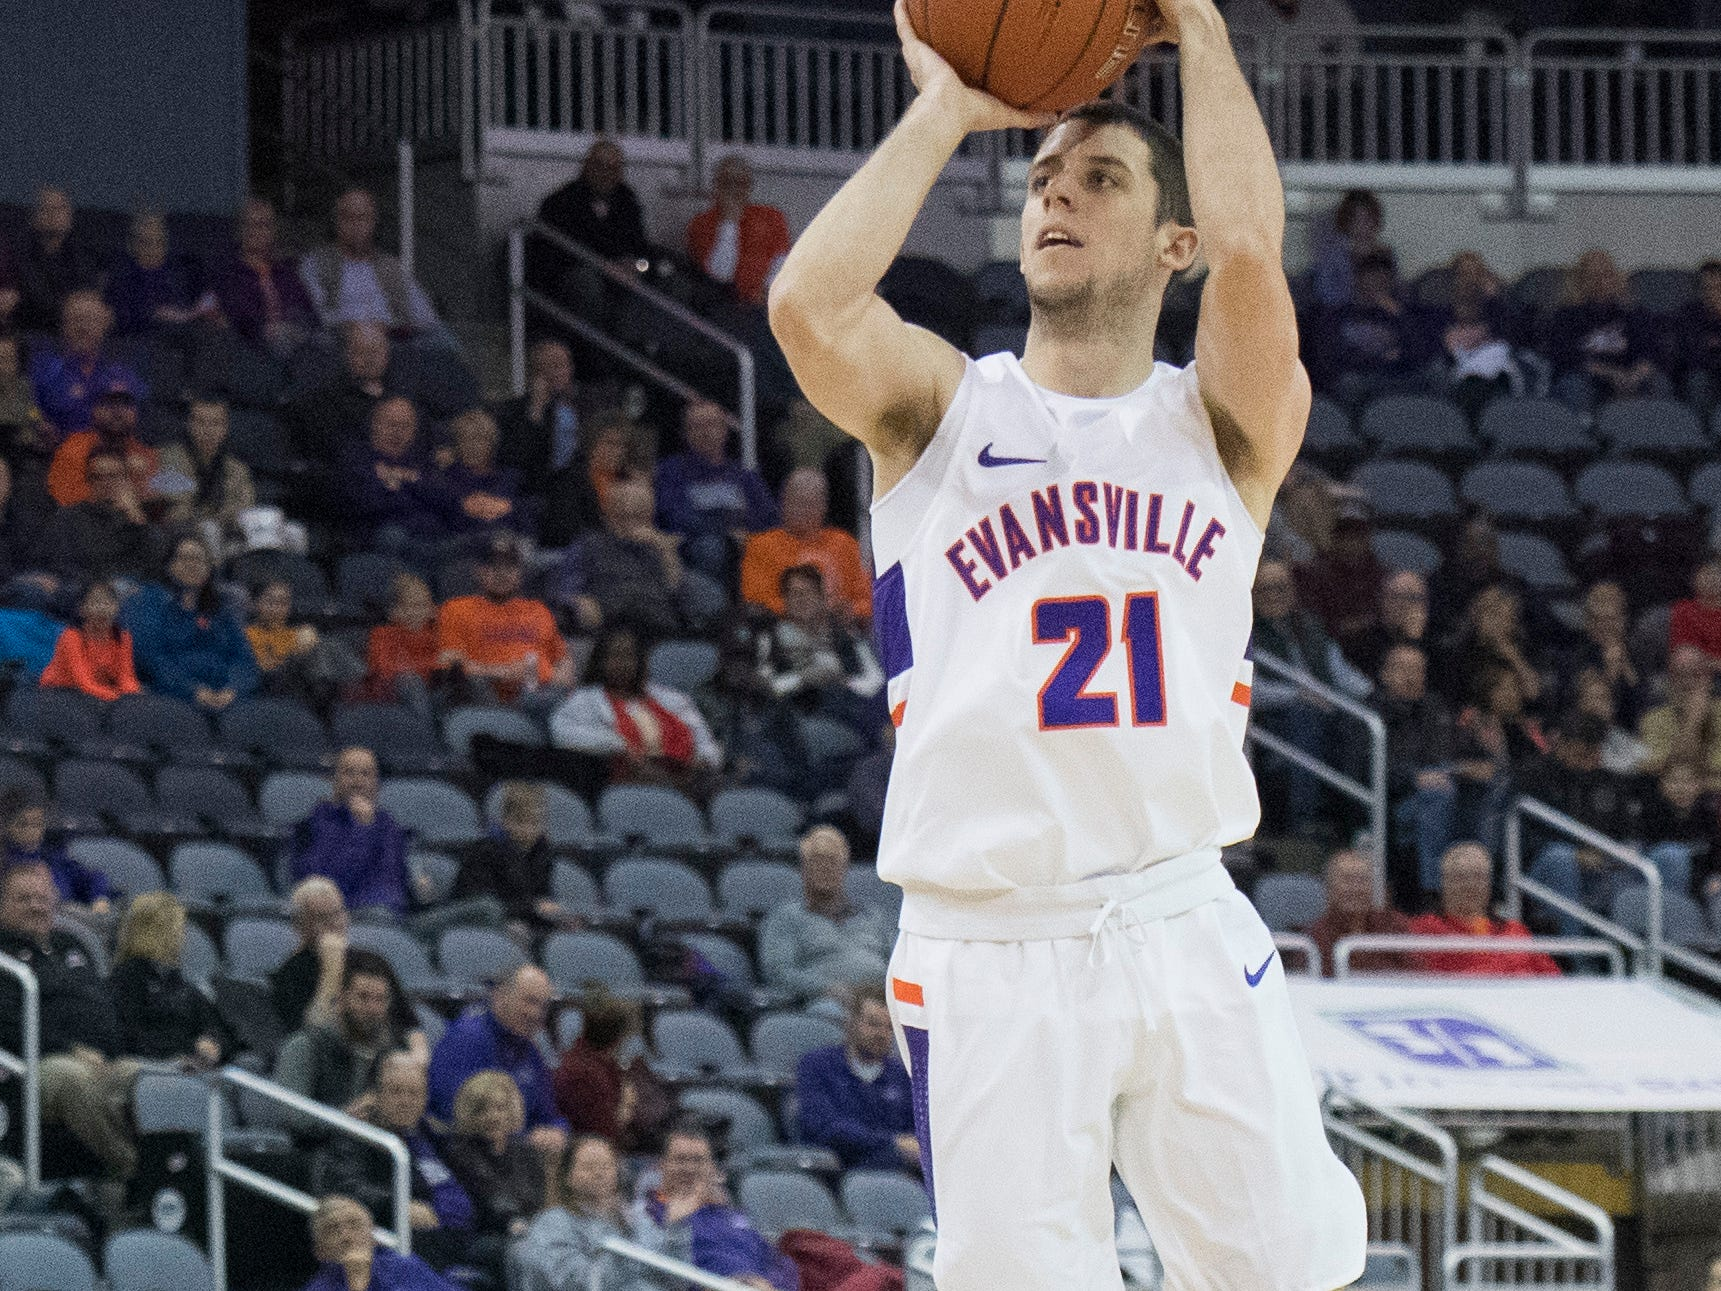 UE's Shea Feehan (21) takes a jump shot during the UE vs Wyoming game at the Ford Center Wednesday, Nov. 28, 2018. UE won 86-76.